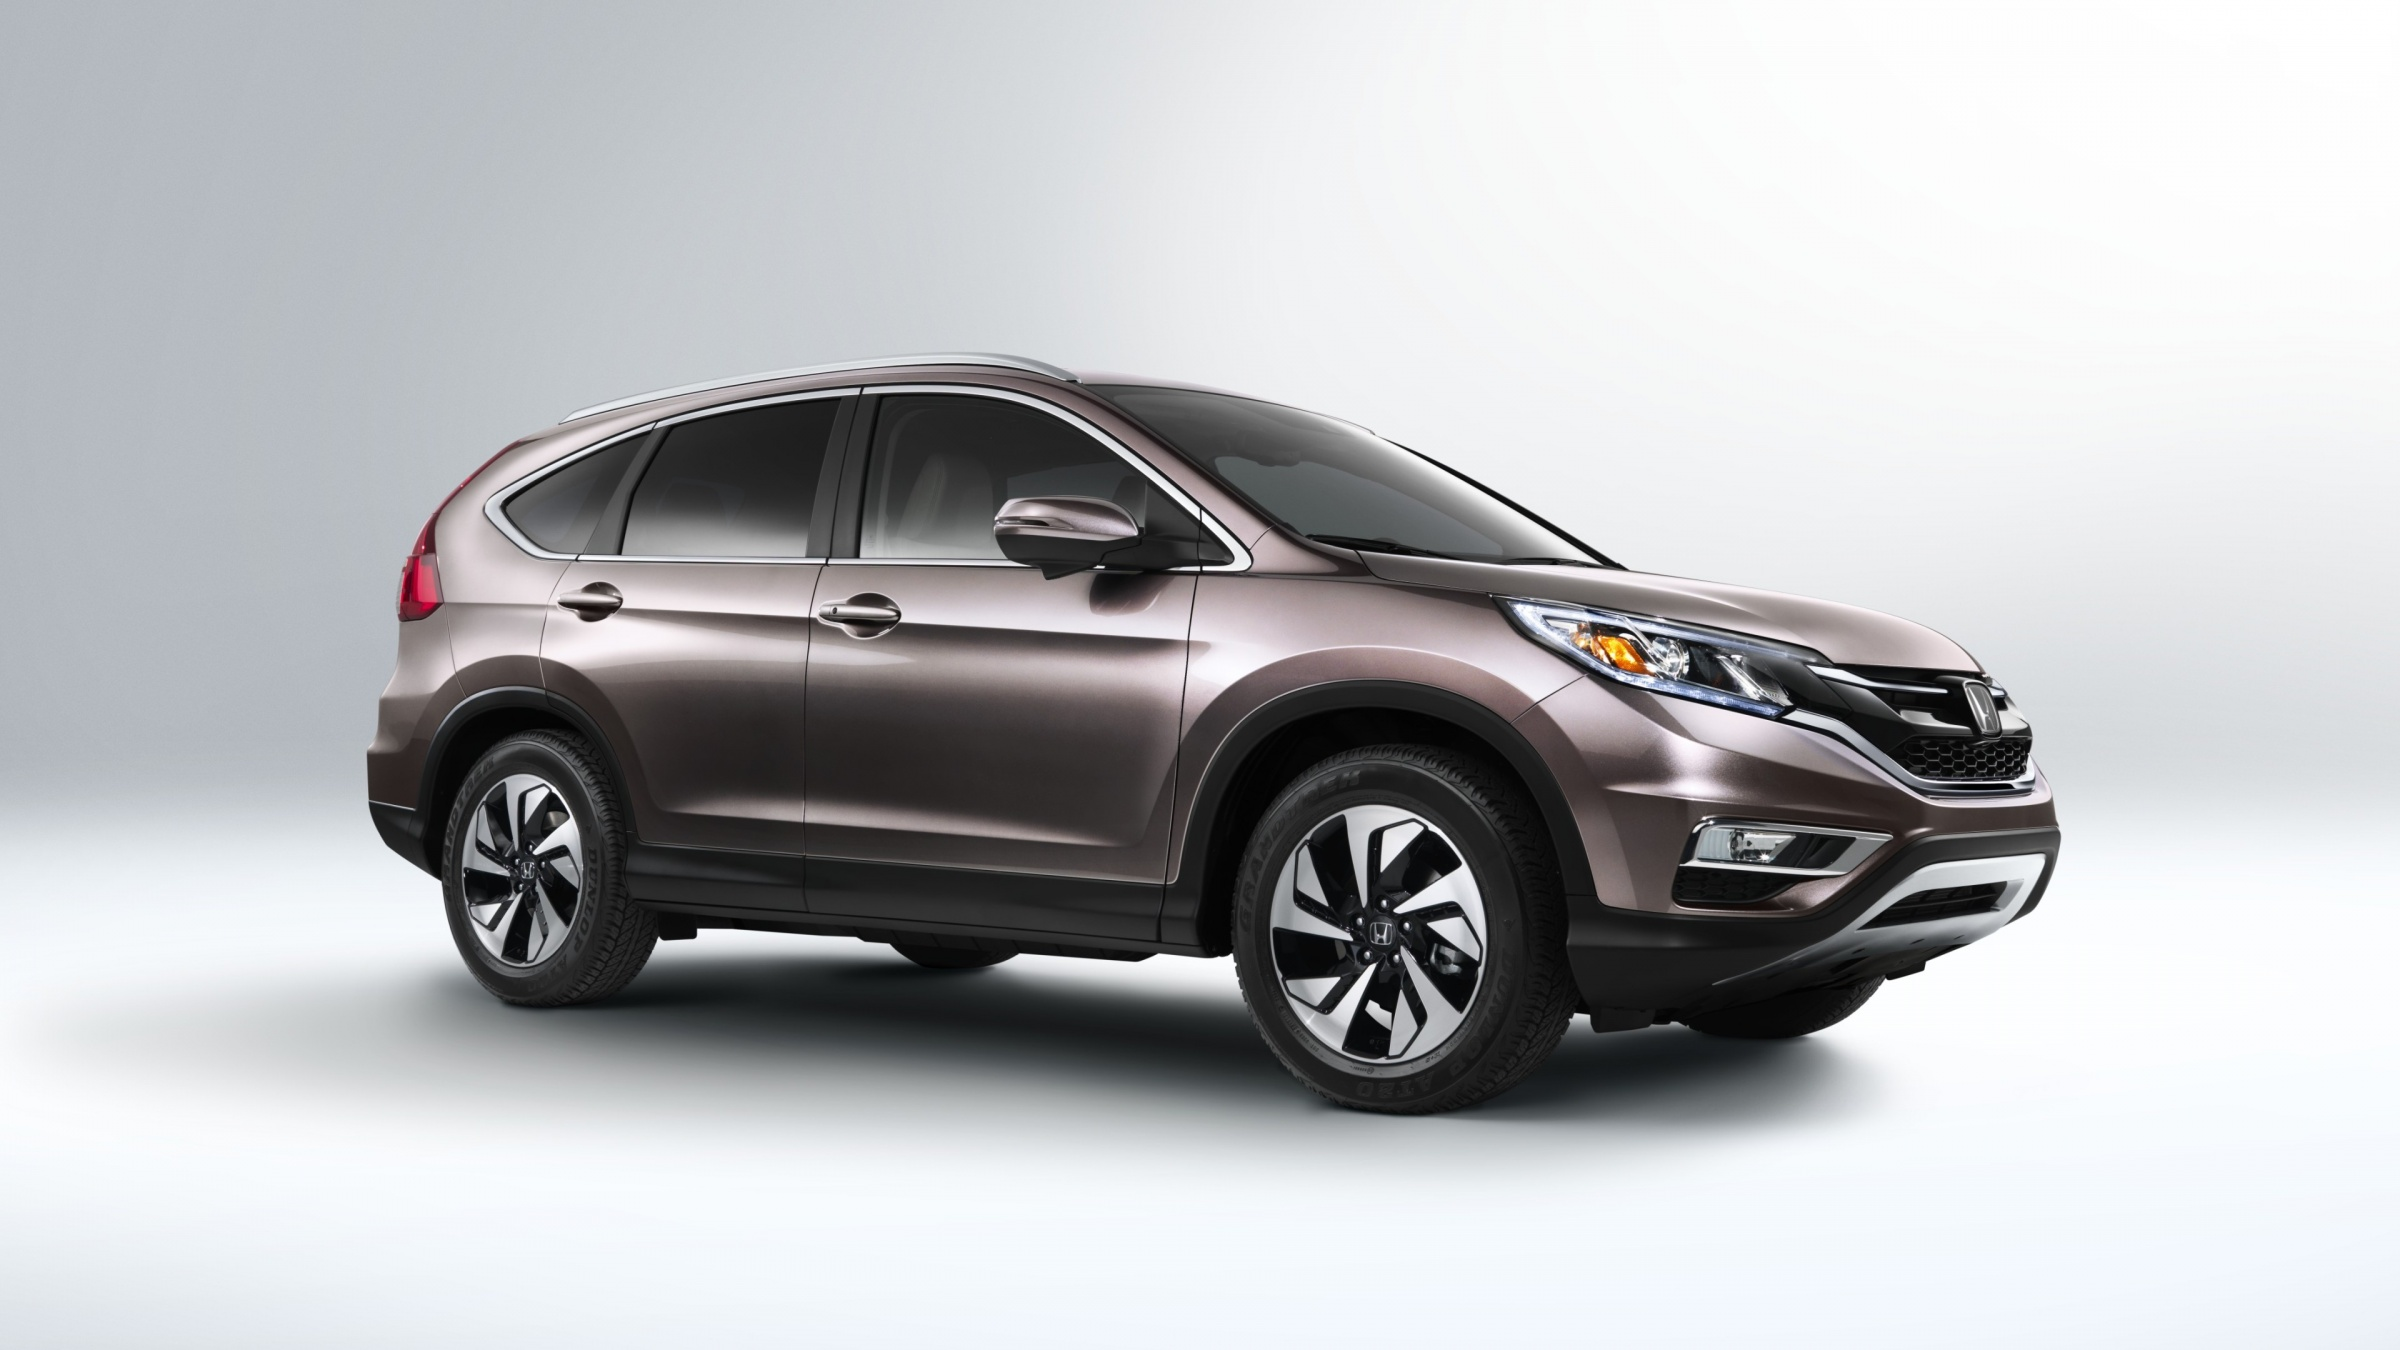 Honda cr v usa version 2016 wallpapers 2400x1350 451174 for Honda crv usa